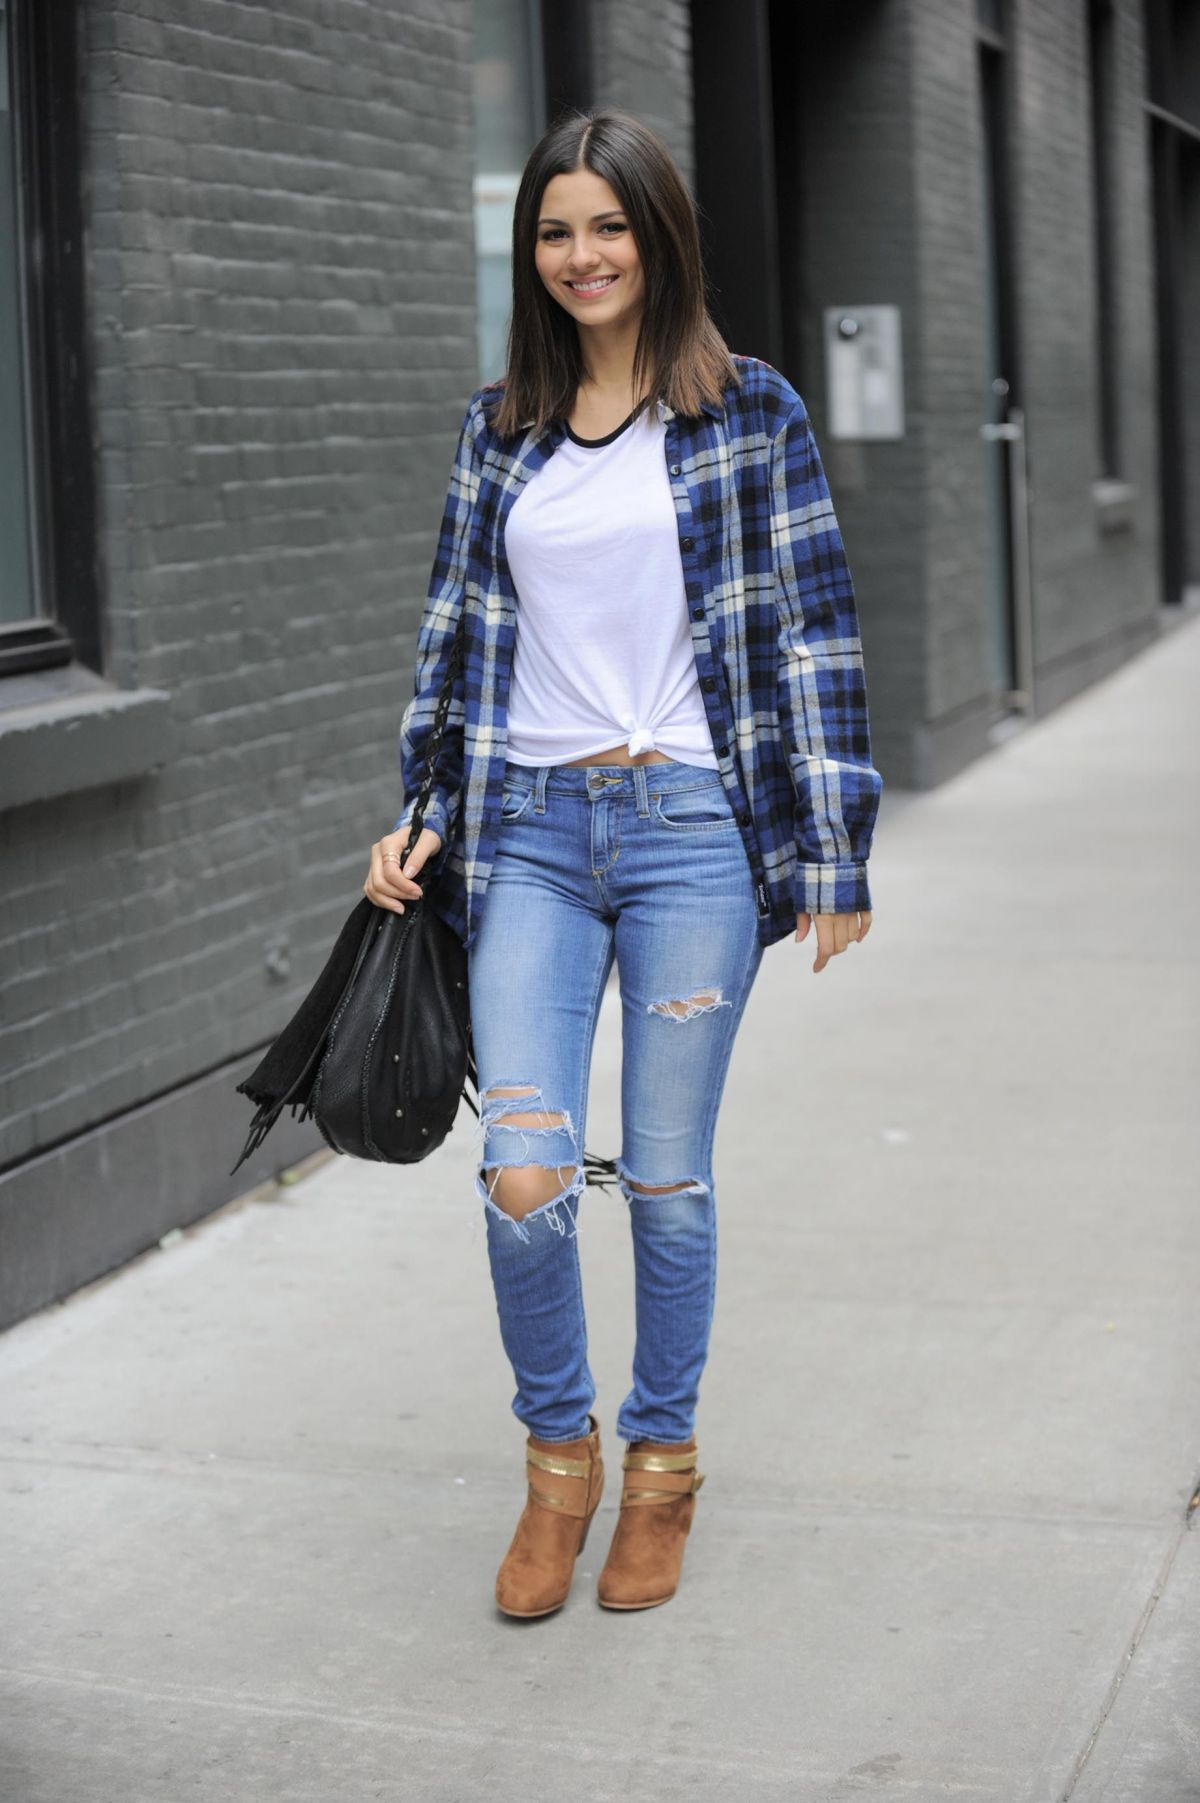 Victoria Justice In Jeans Out And About In New York